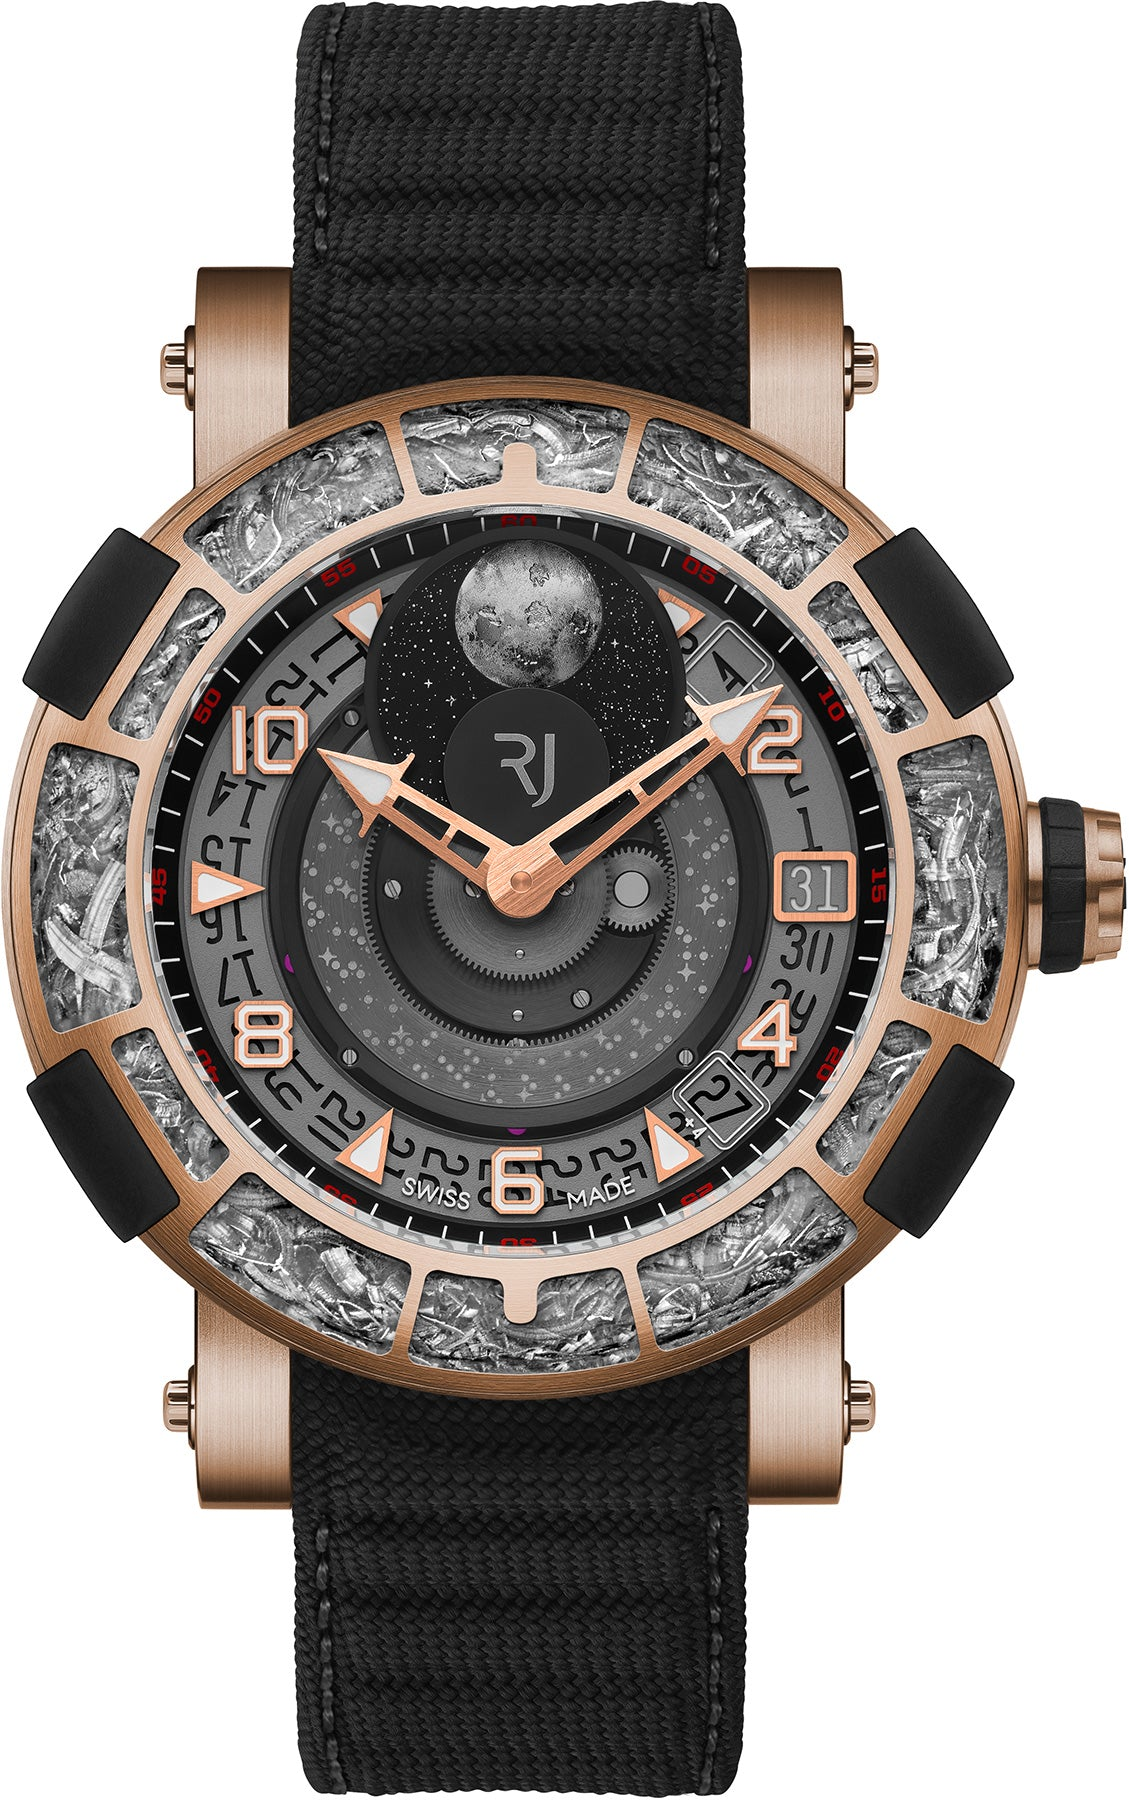 RJ Watches ARRAW 6919 Gold Pre-Order